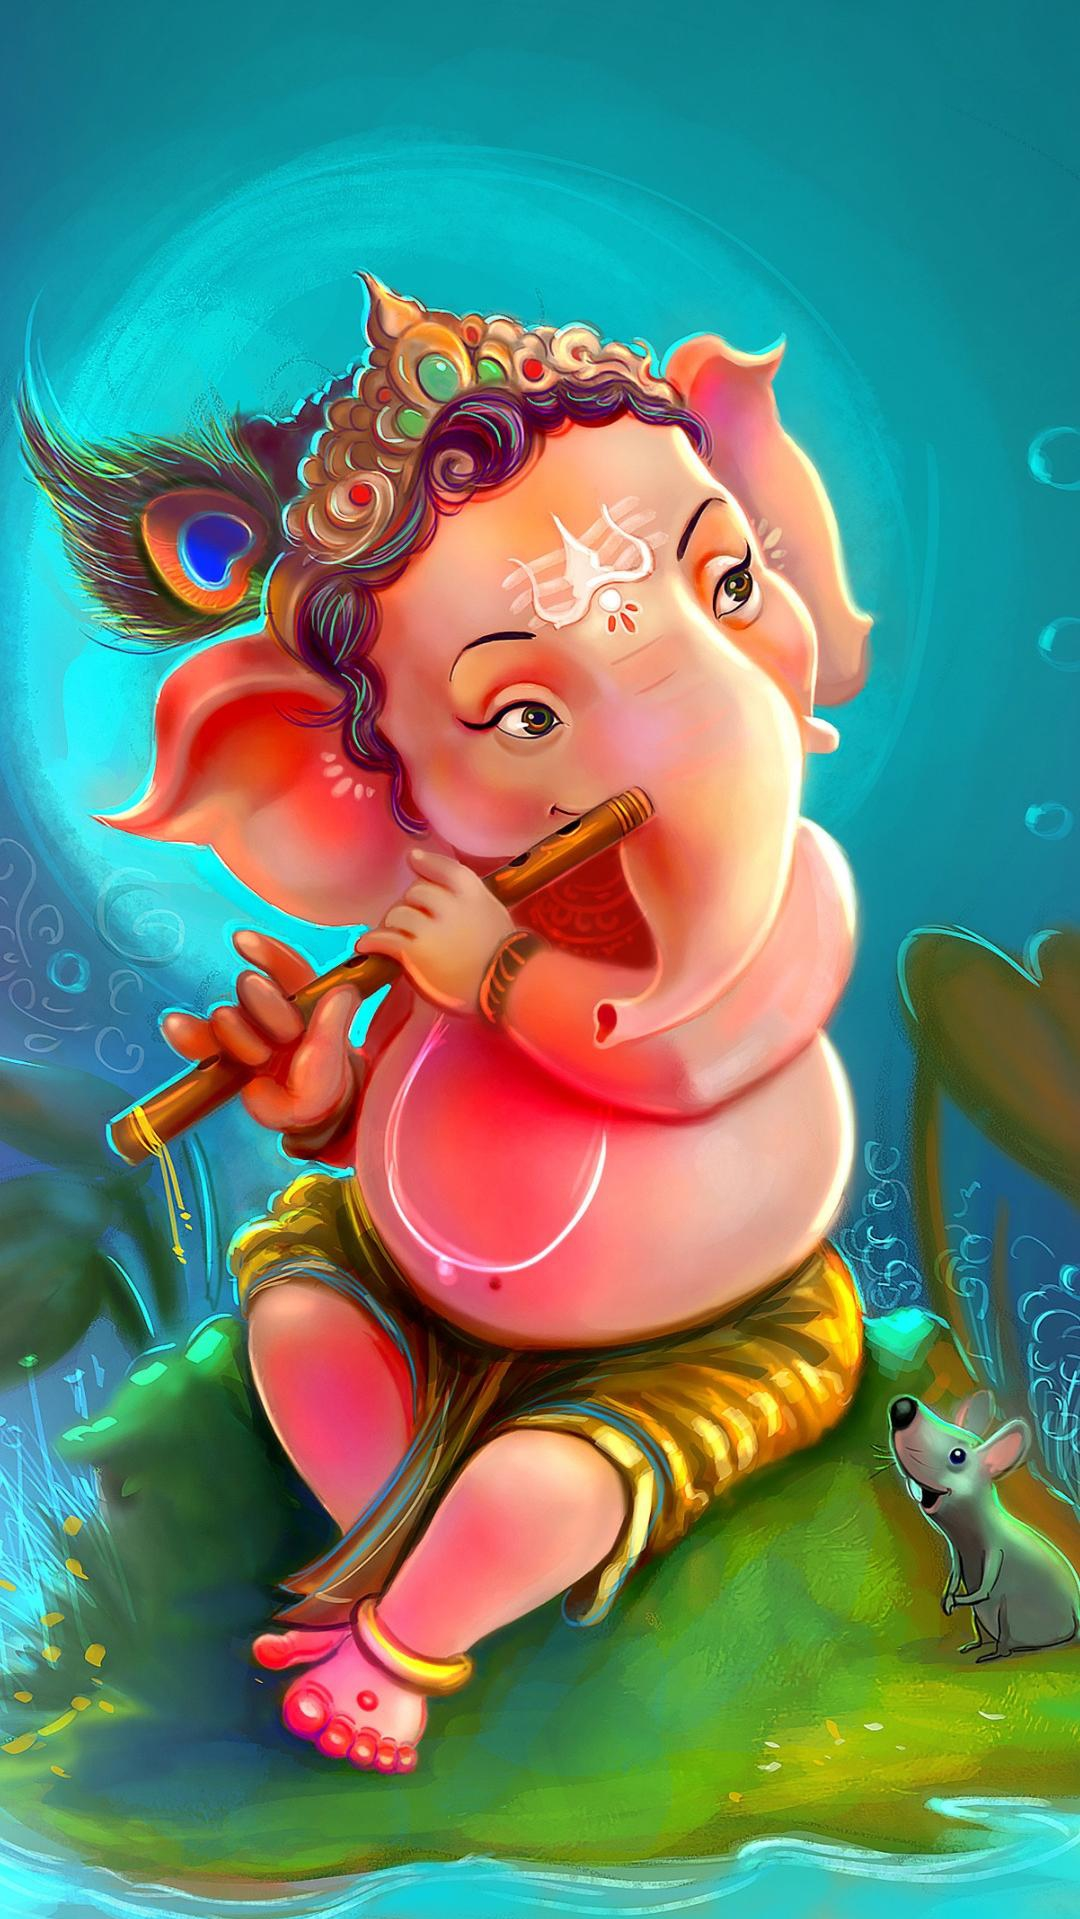 Lord Ganesha Cute iPhone Wallpaper